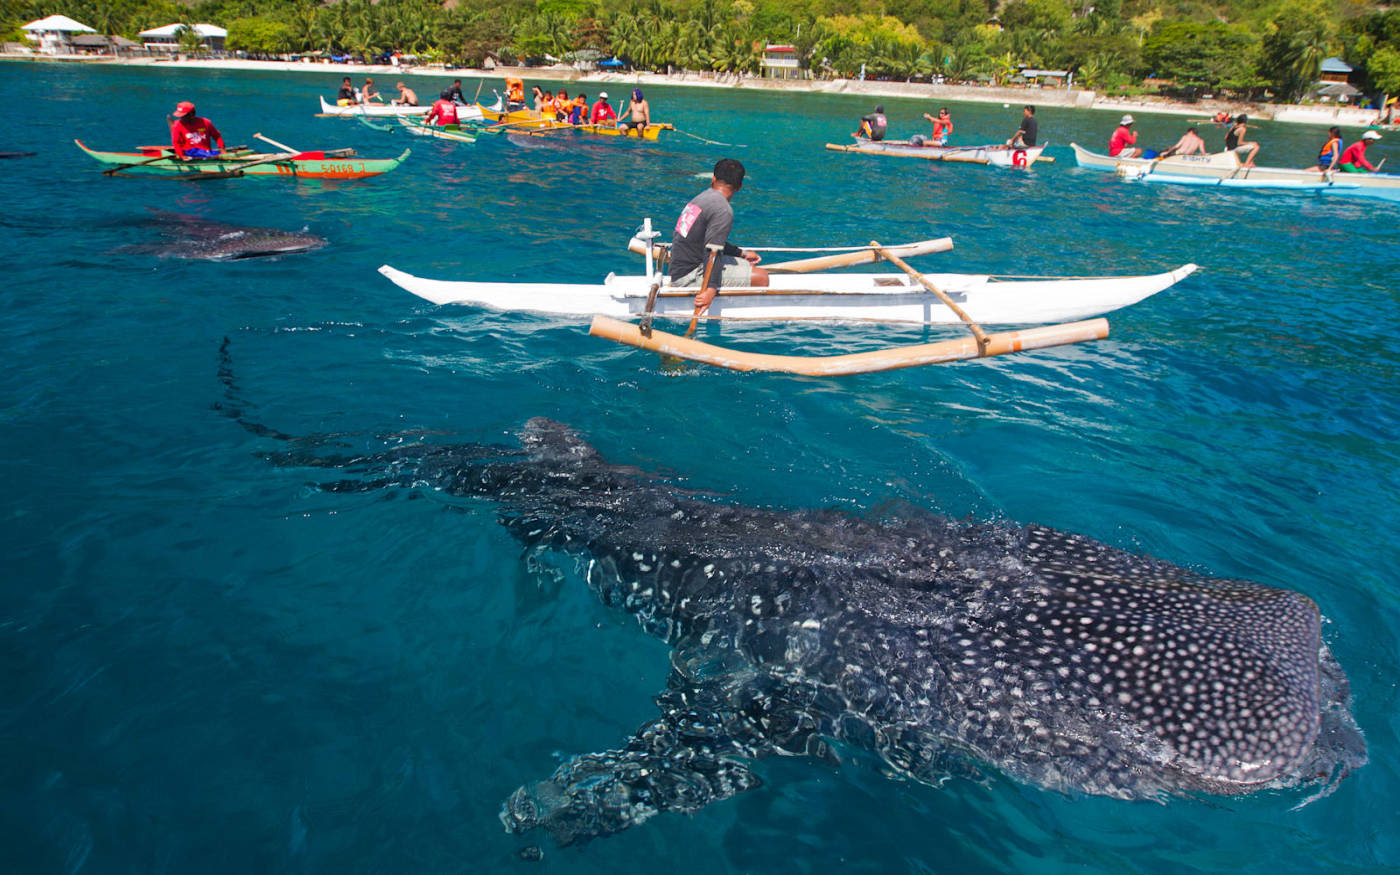 Canoes in sea with large sea mammal swimming below